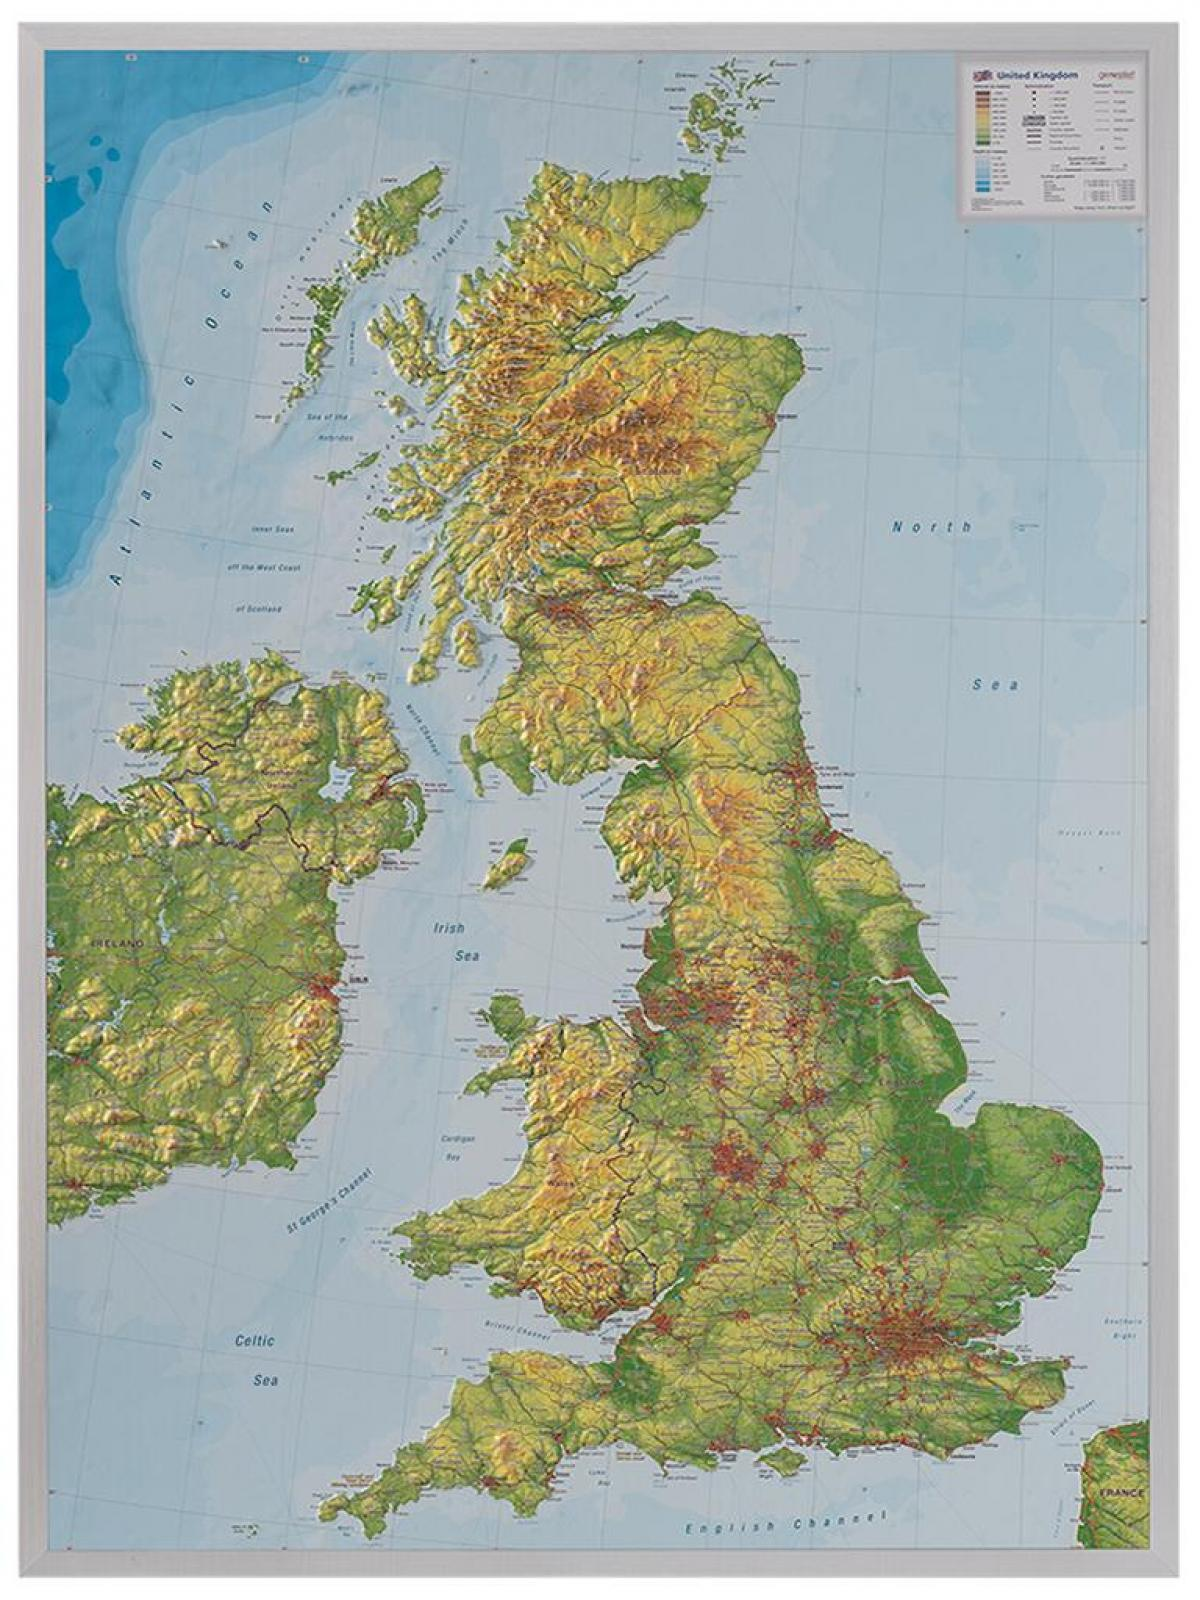 Terrain Map UK Map Of UK Terrain Northern Europe Europe - Terrain map uk